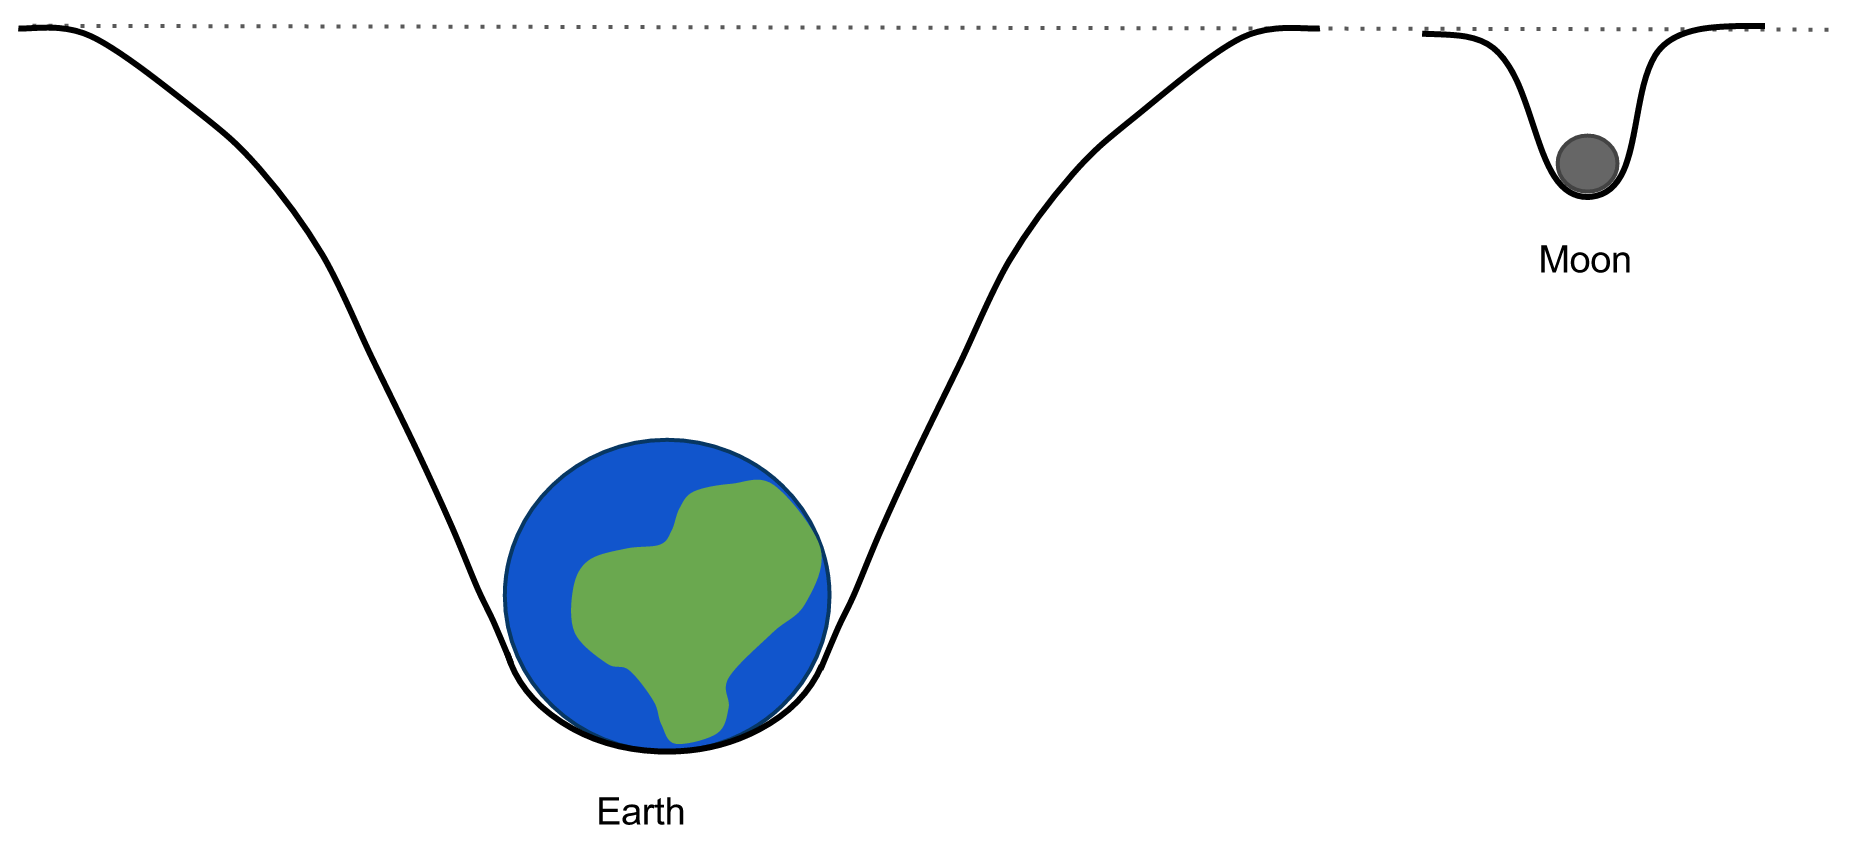 for example, the earth is much more massive than the moon and so has a  deeper gravity well or a stronger gravitational field